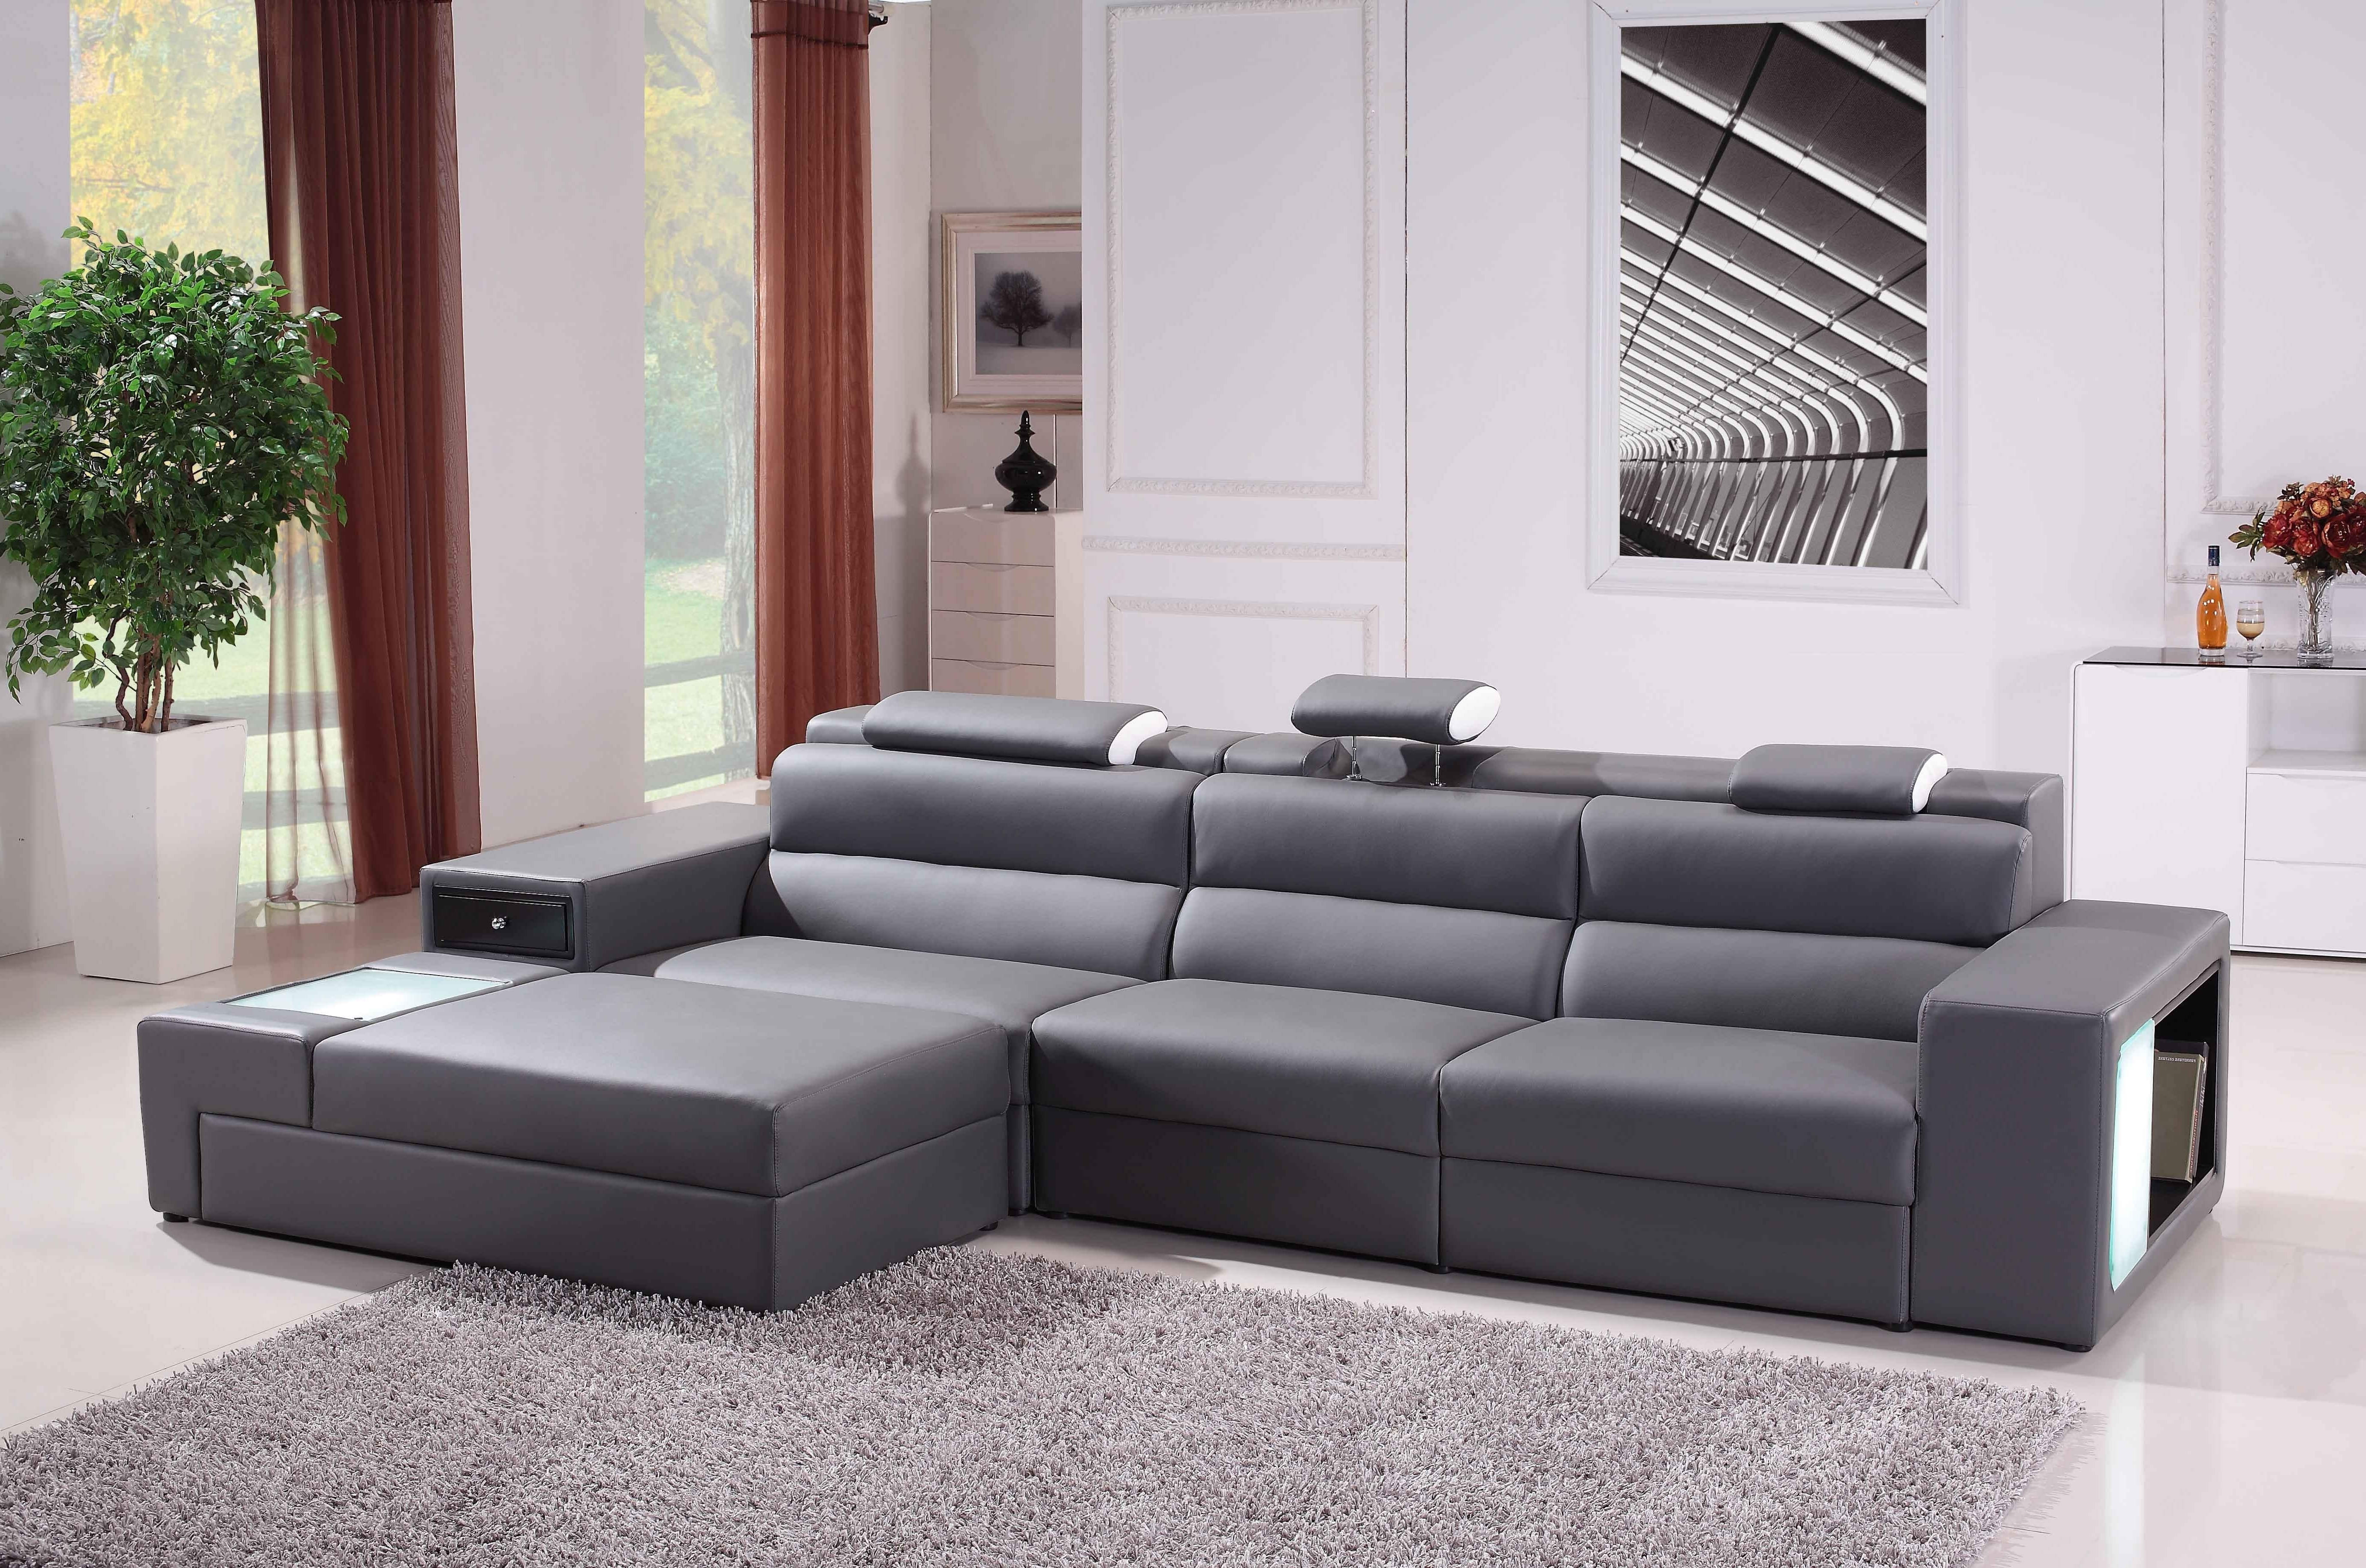 Most Current Modern Grey Leather Sofa Sam Levitz Furniture For Gray Decorations Regarding Sam Levitz Sectional Sofas (View 7 of 15)